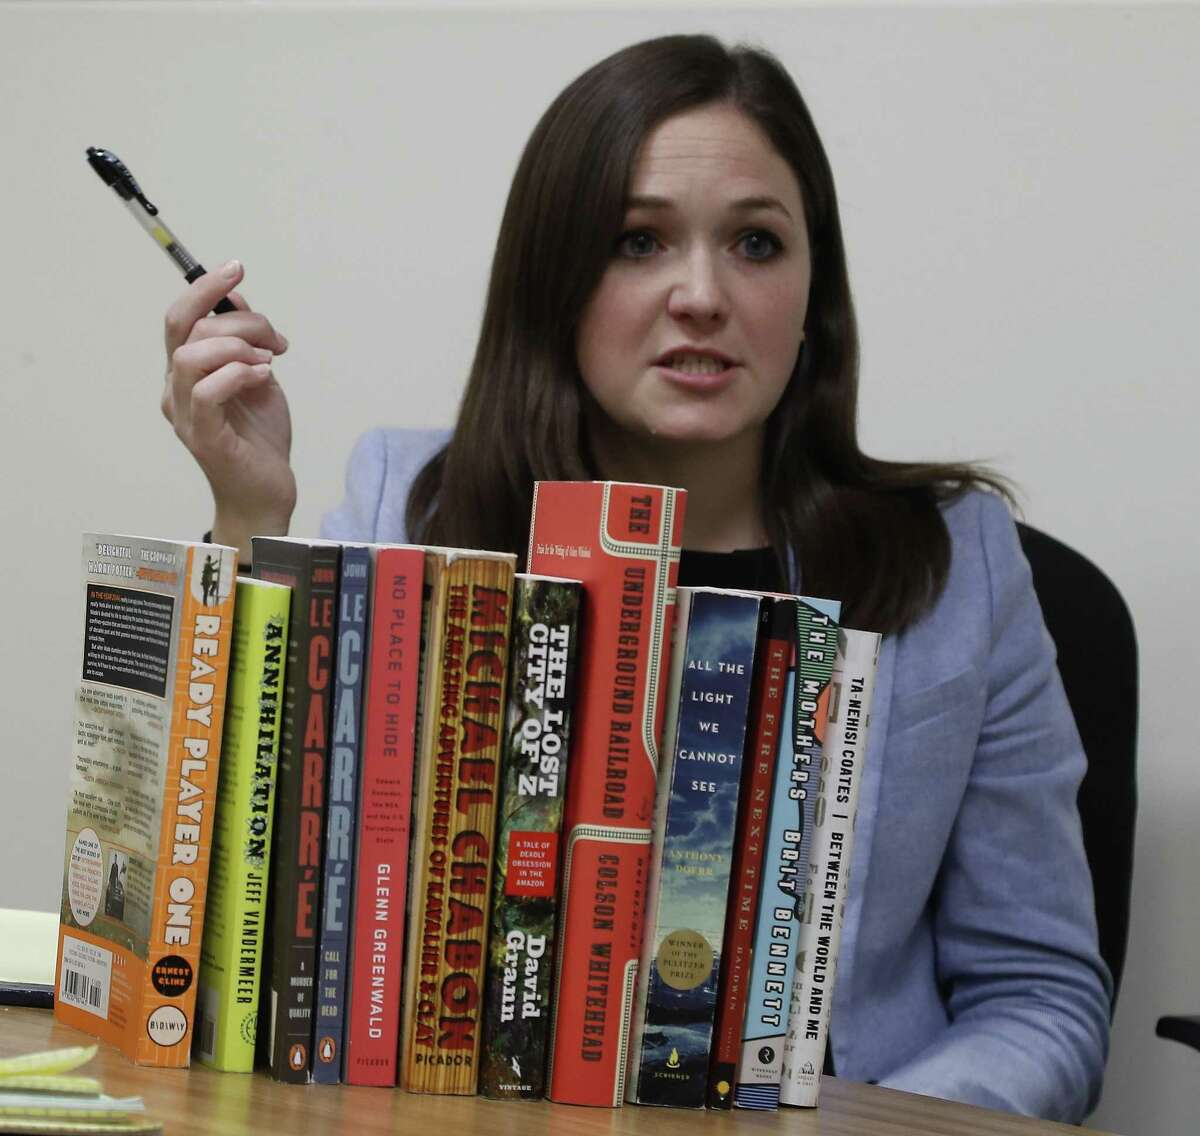 Public defender Amalia Beckner, with a few books in her personal collection, Friday, June 15, 2018, in Houston. She has been crowdfunding buying books for jailed clients in the past few weeks. ( Karen Warren / Houston Chronicle )